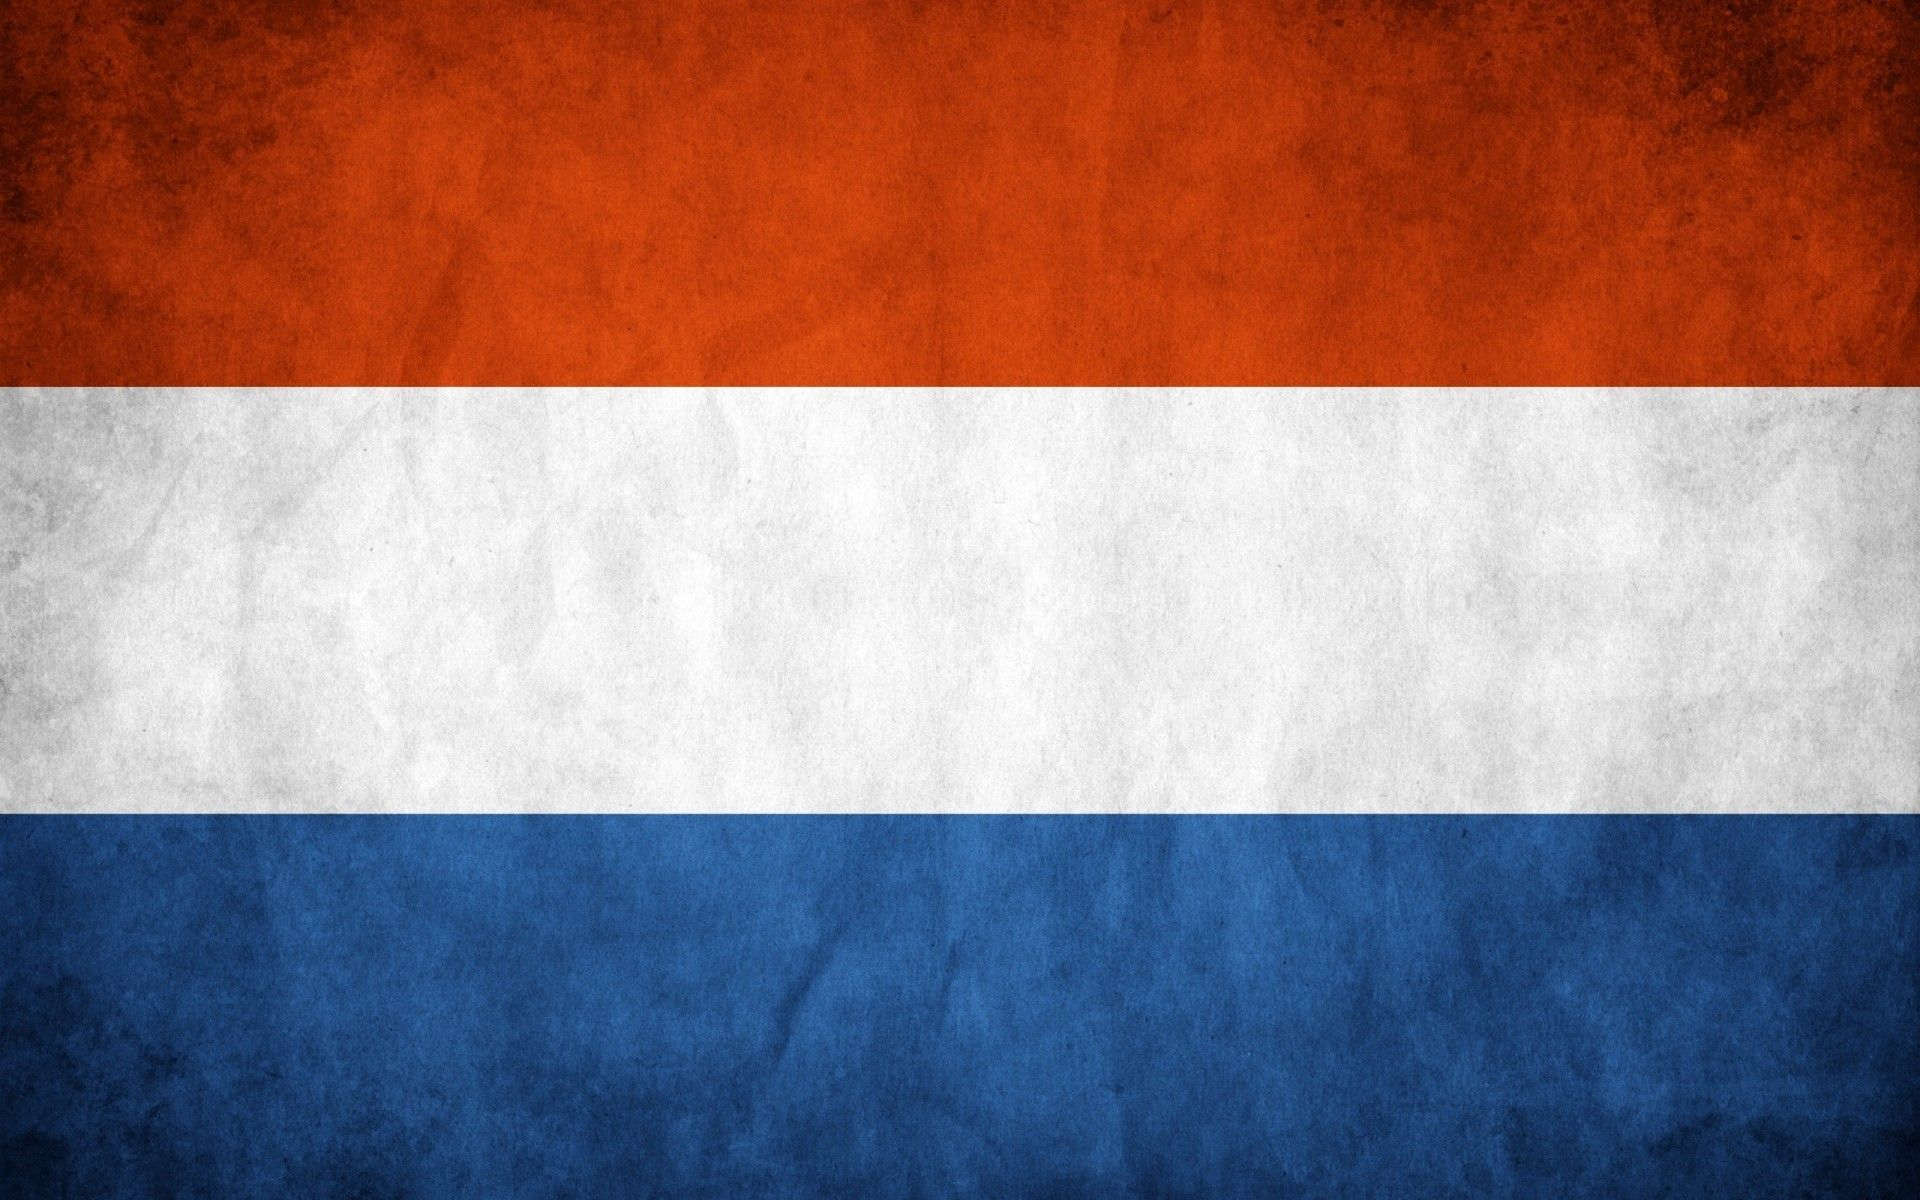 1920x1200 The Netherlands Flag - Android wallpapers